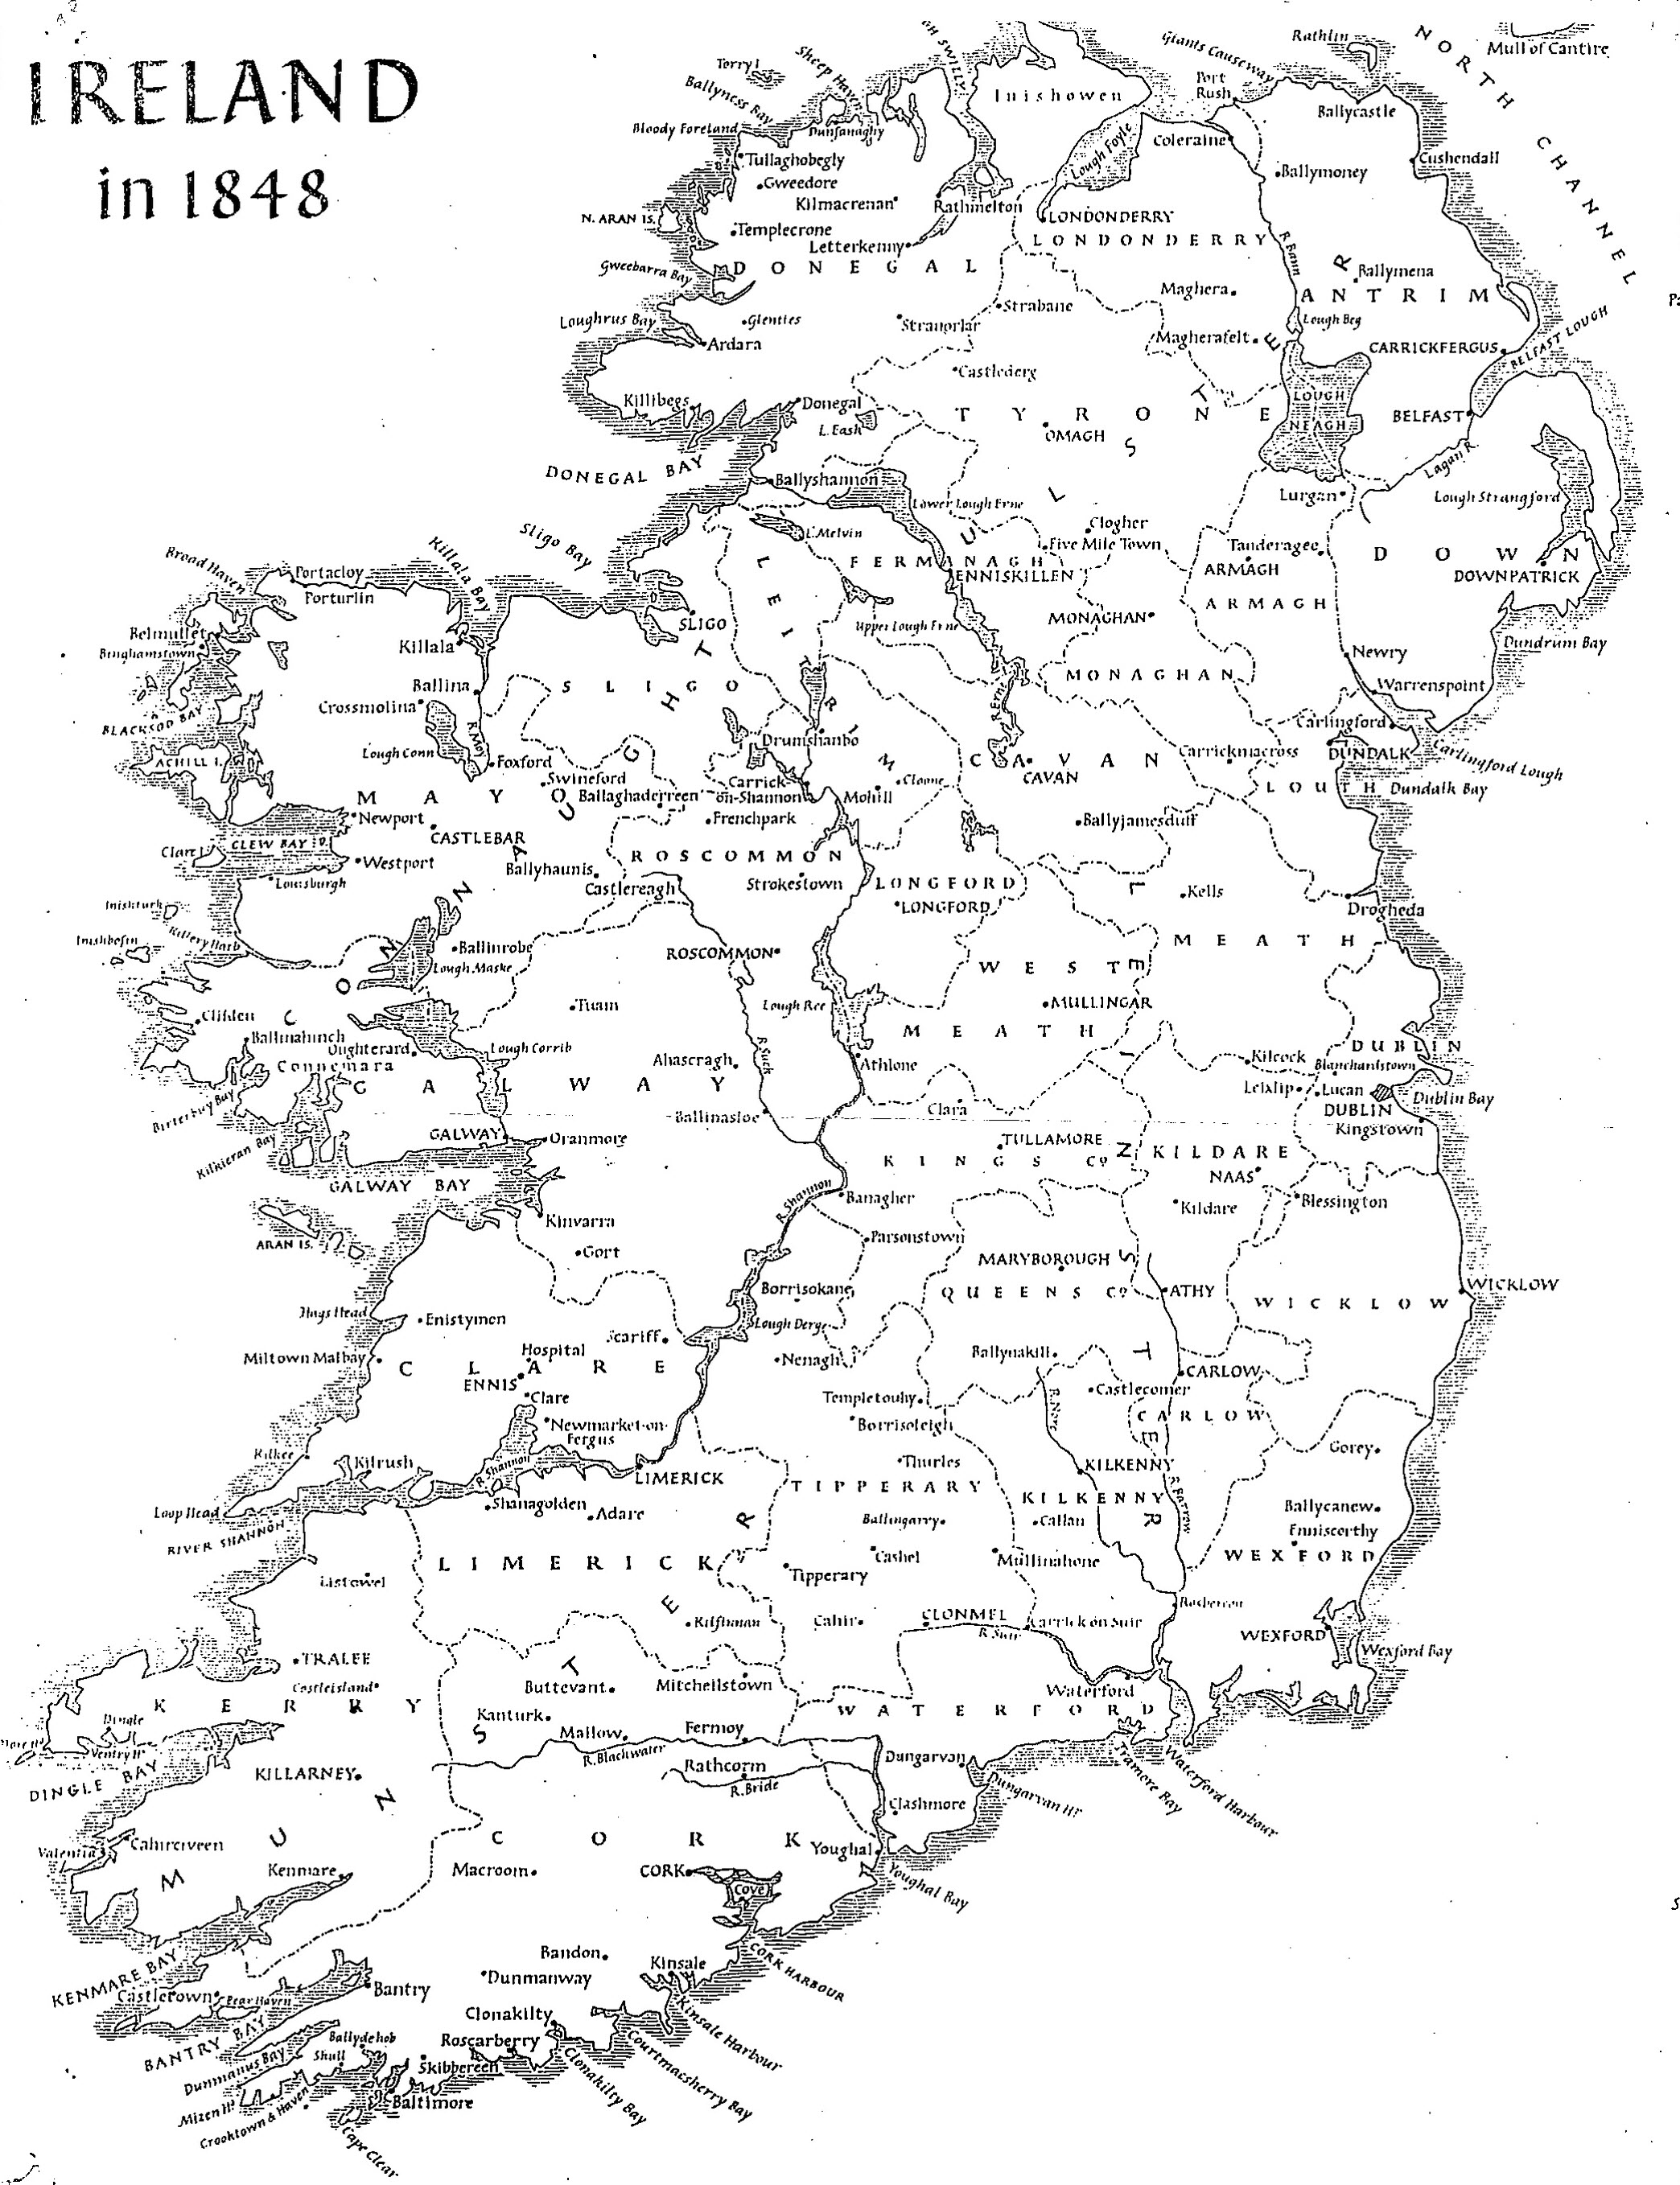 Map of Ireland in 1848